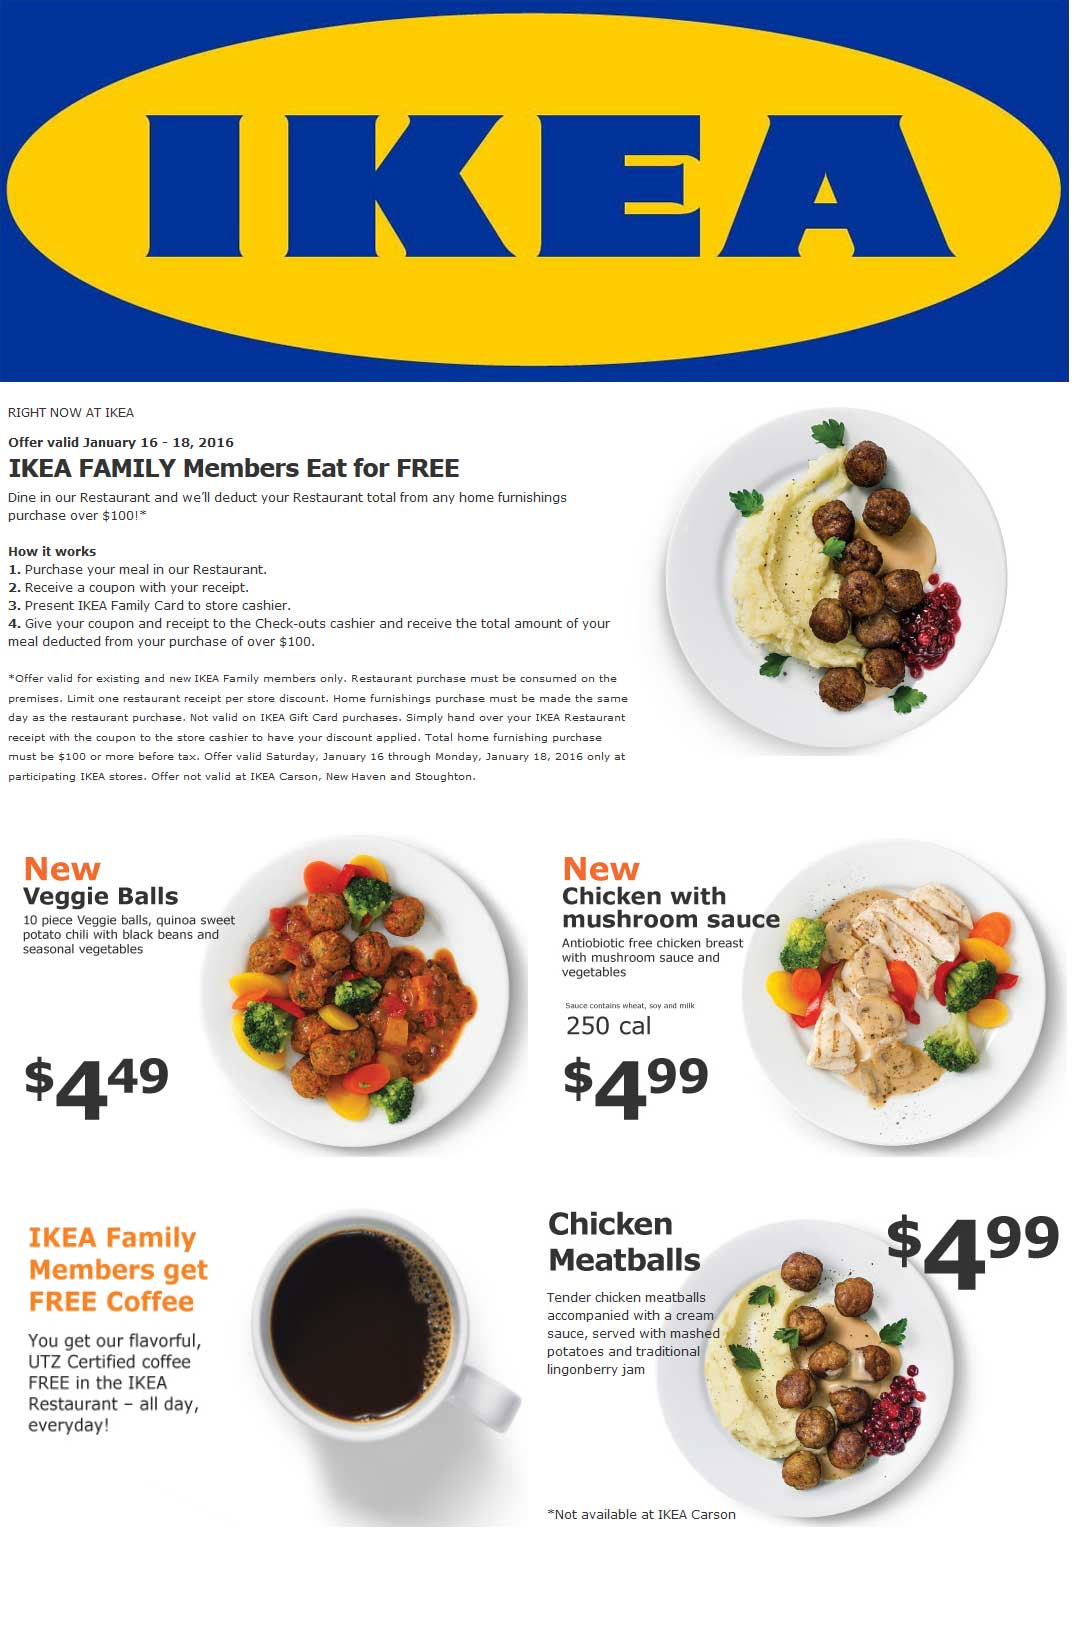 IKEA Coupon April 2017 Free coffee daily, free meal on $100 spent at IKEA furniture